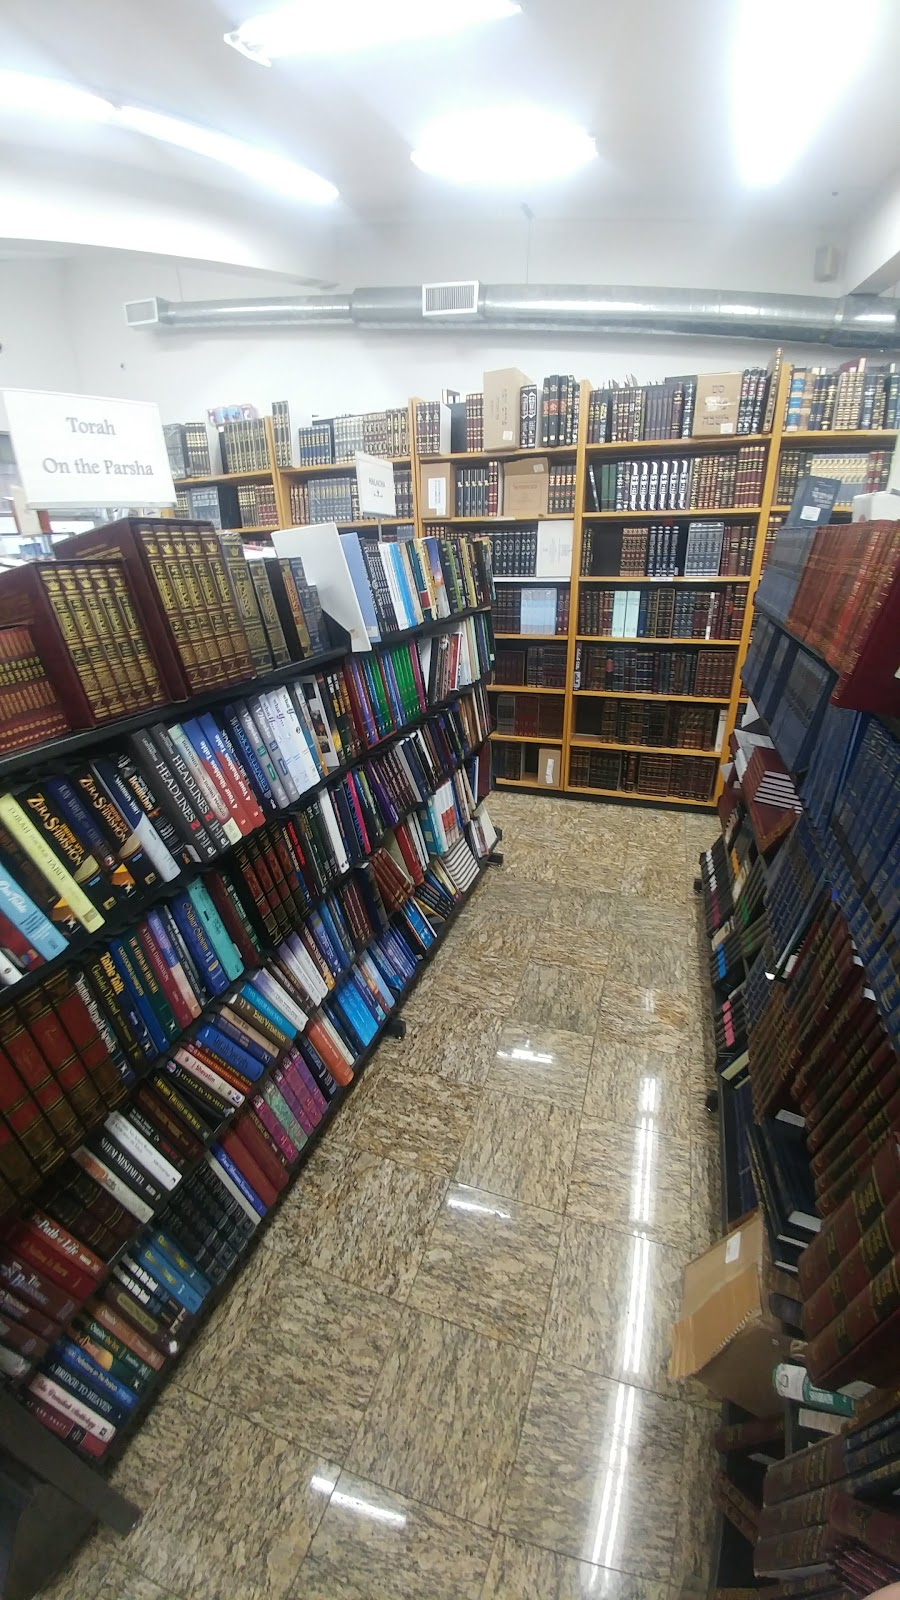 Z. Berman Books - Passaic - store  | Photo 3 of 10 | Address: 232 Terhune Ave., Passaic, NJ 07055, USA | Phone: (973) 471-1765